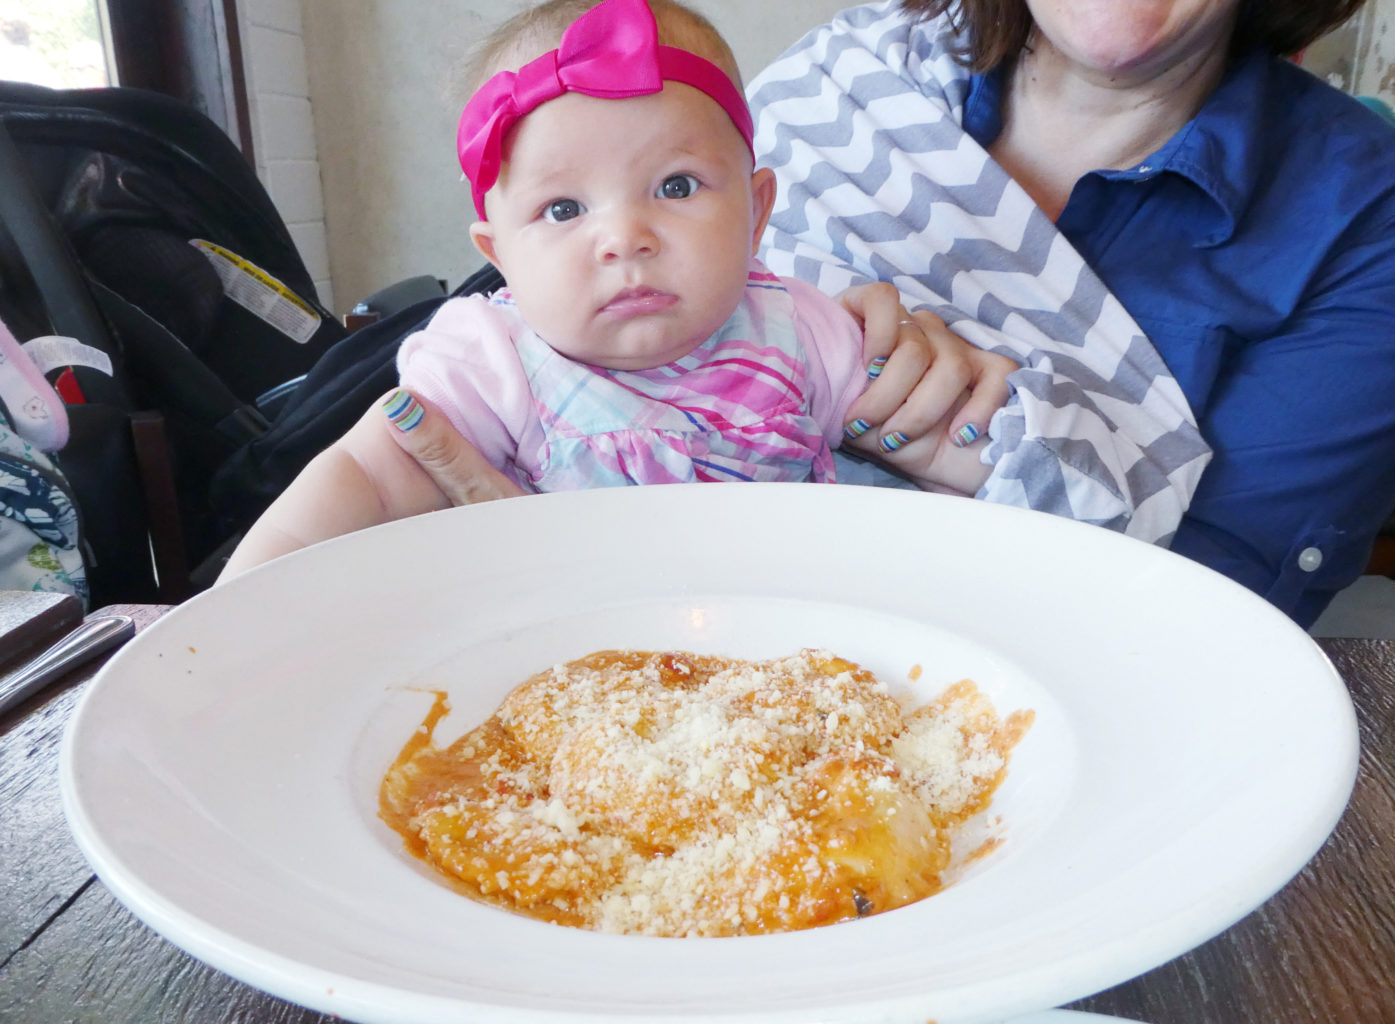 Nursing baby while traveling in a restaurant - TravelingMom